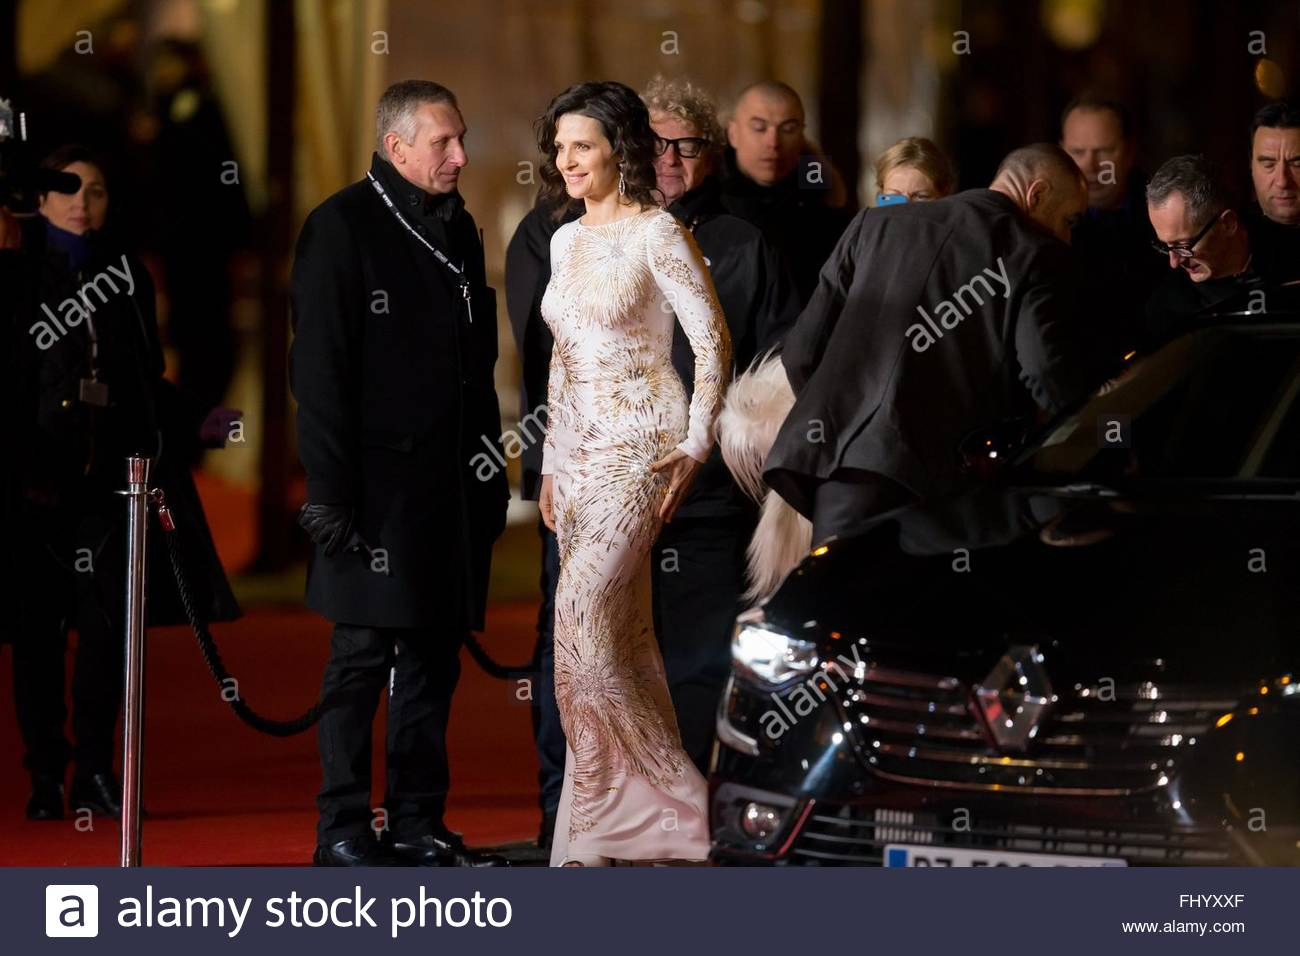 Paris, France. February 26th, 2016. FRANCE, Paris: French actress Juliette Binoche walks on the red carpet of the - Stock Image